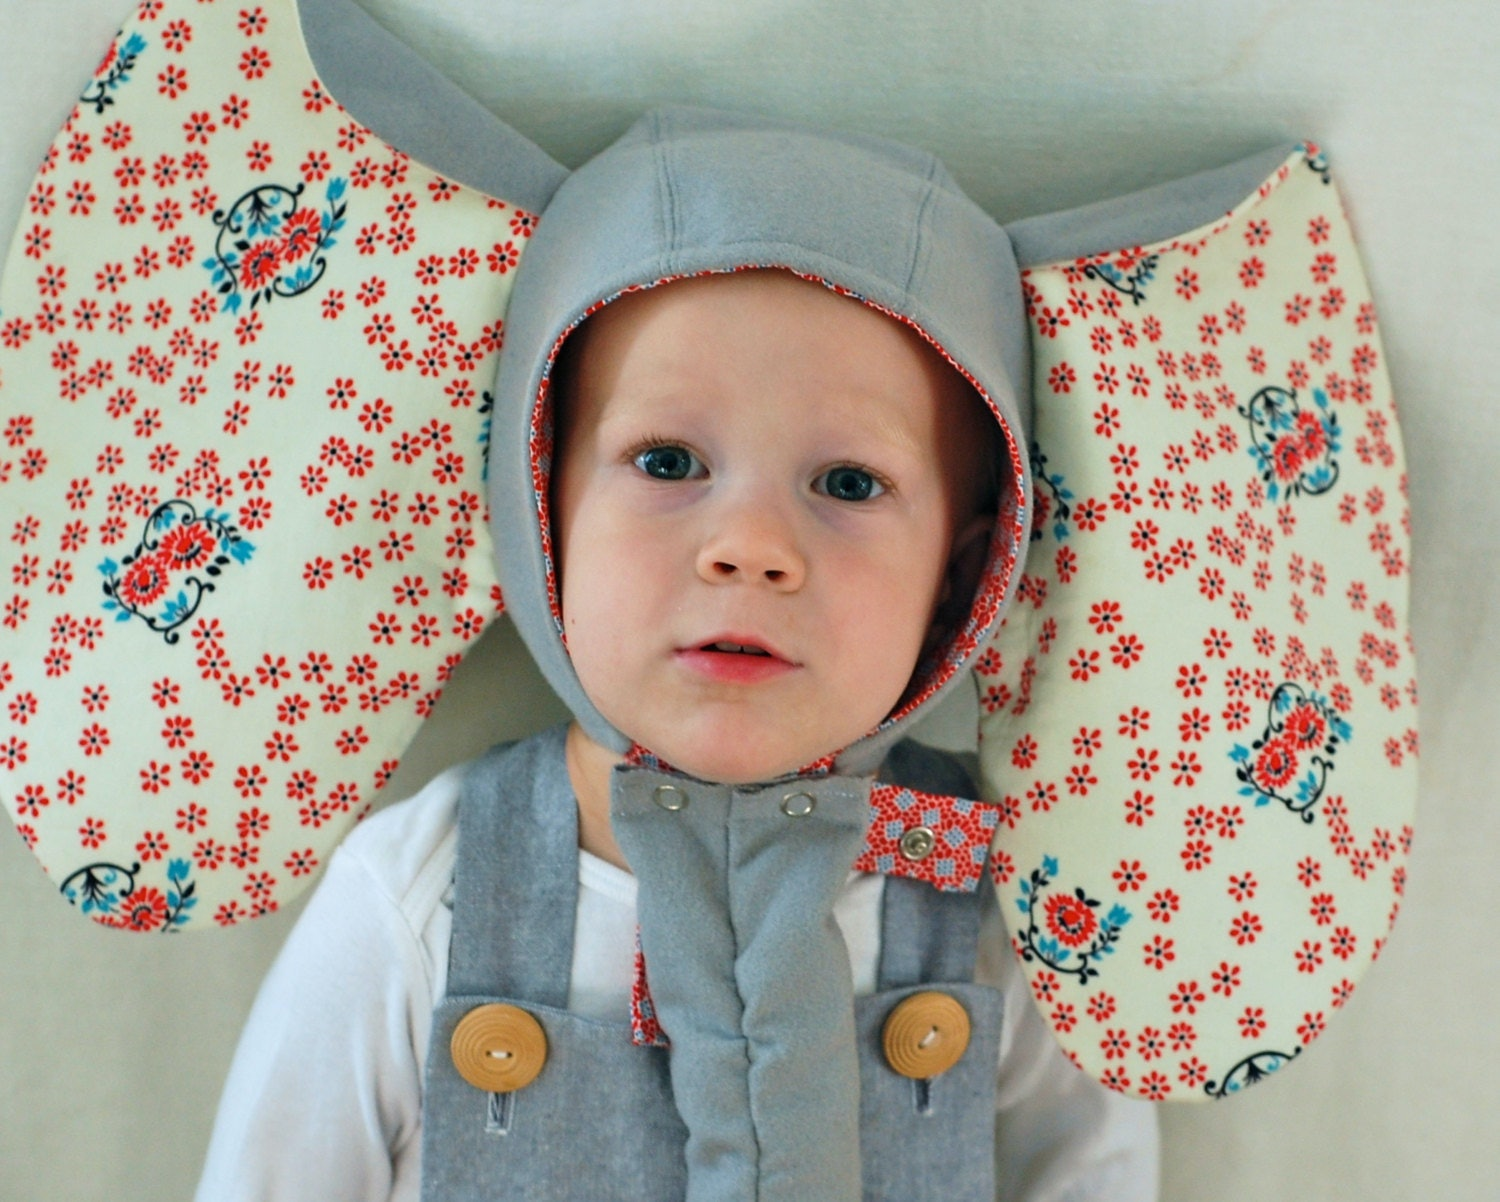 17 Babies In Halloween Costumes, Because Infants Make The Cutest ...